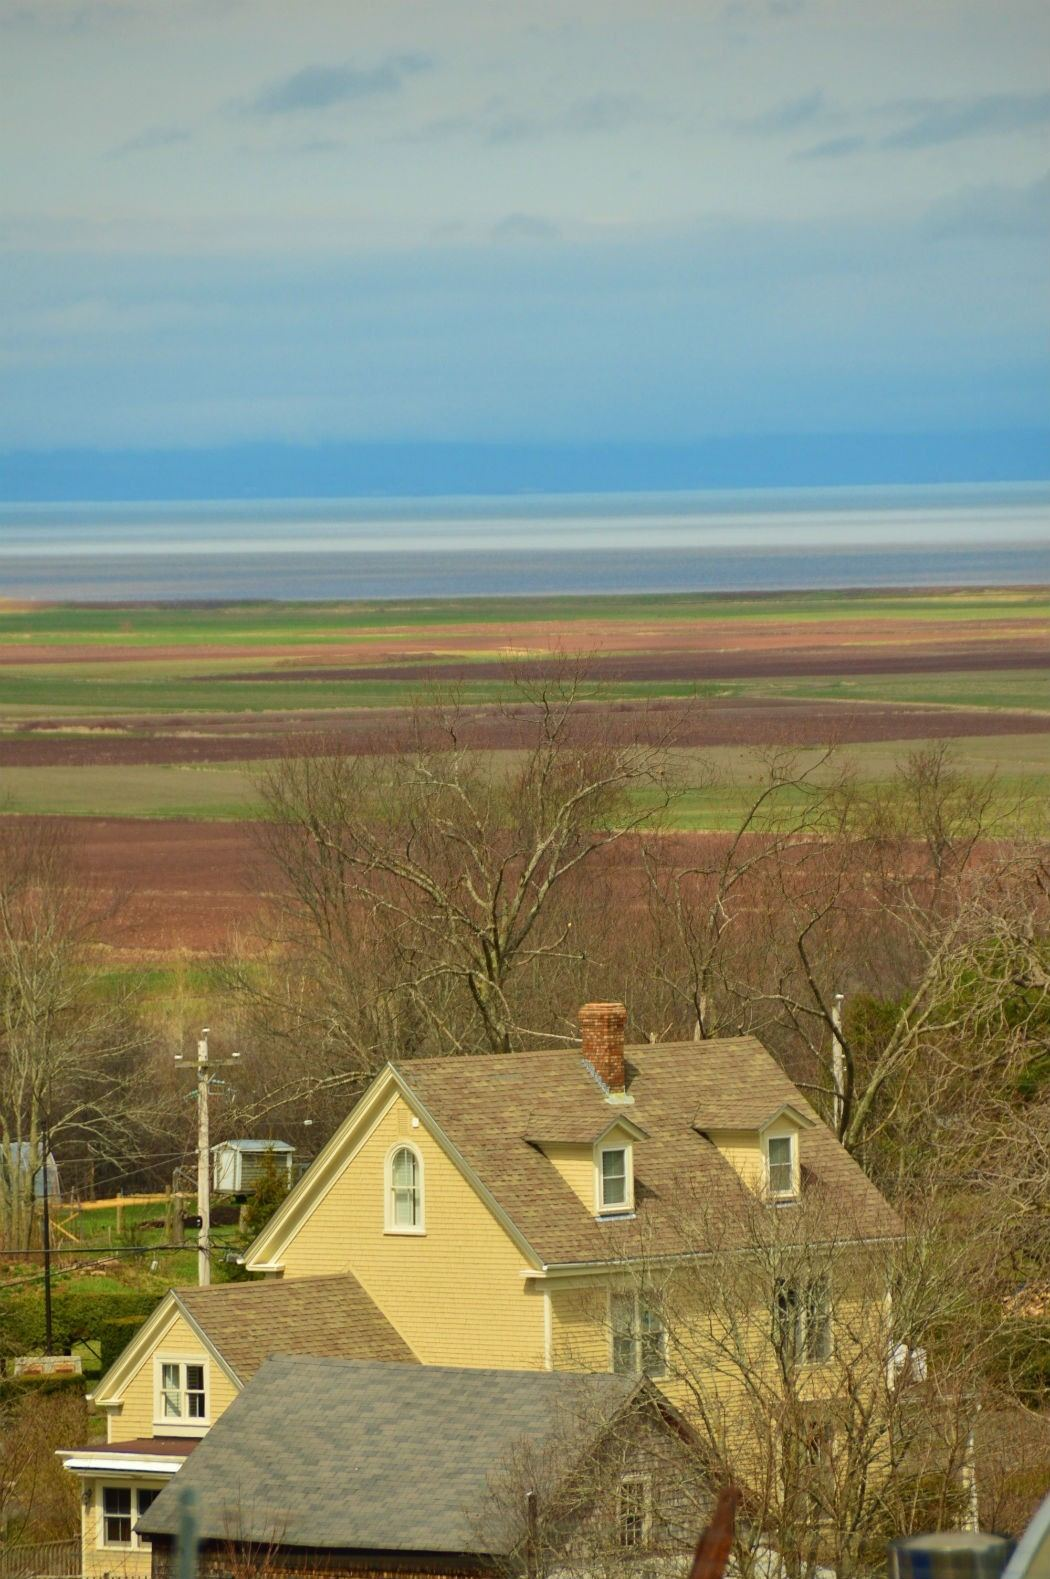 House and landscape of wolfville